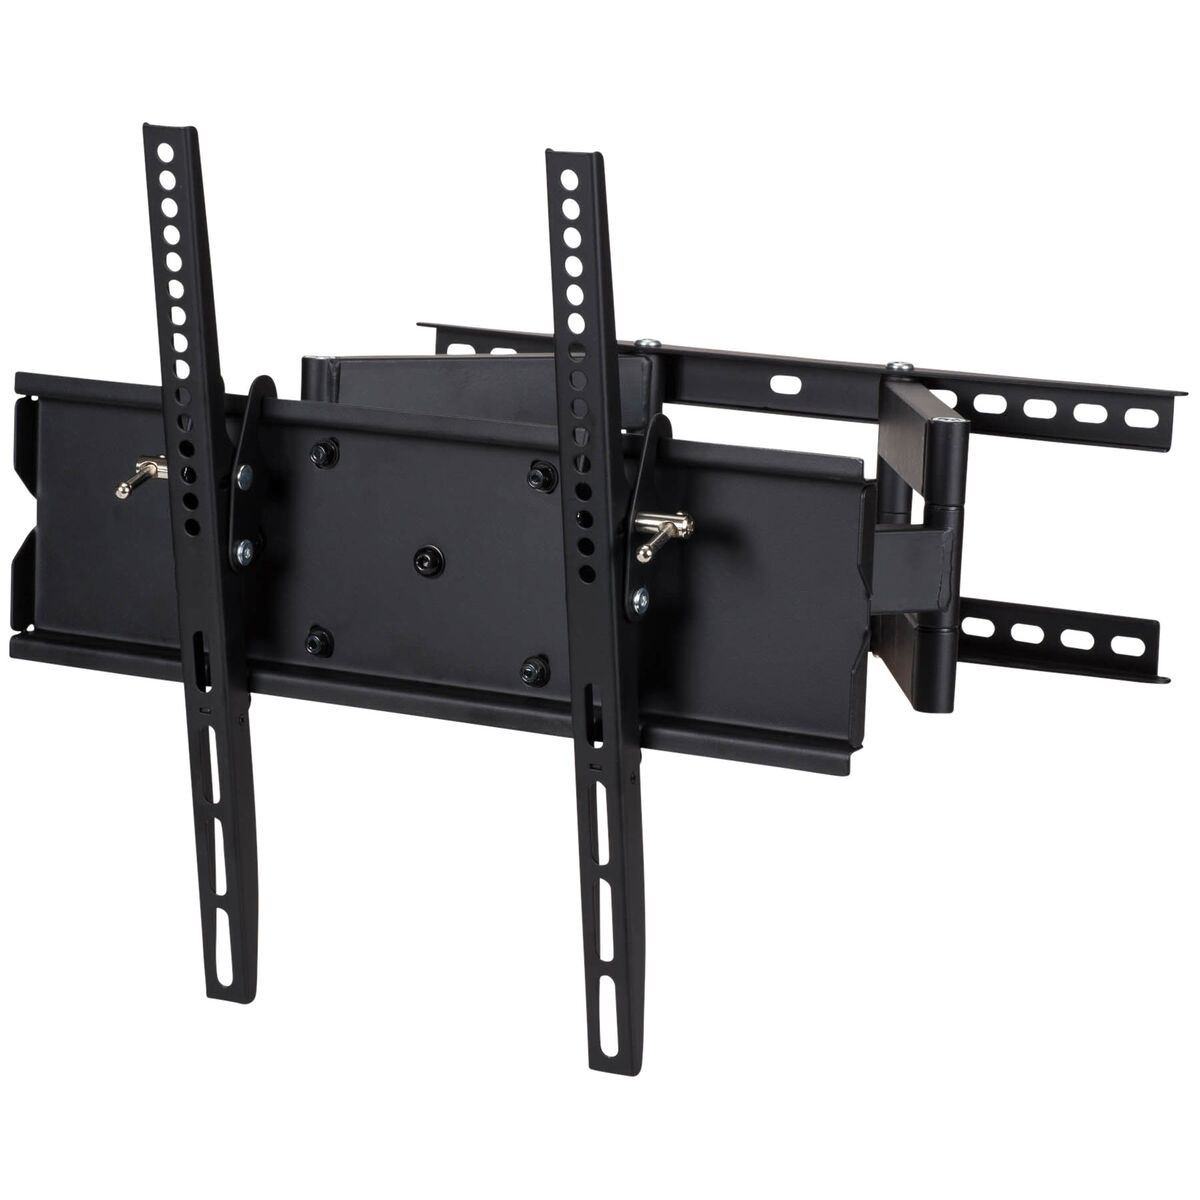 Dayton Audio Shadow Mount Am5516 Articulating Tv Wall Mount 32 80